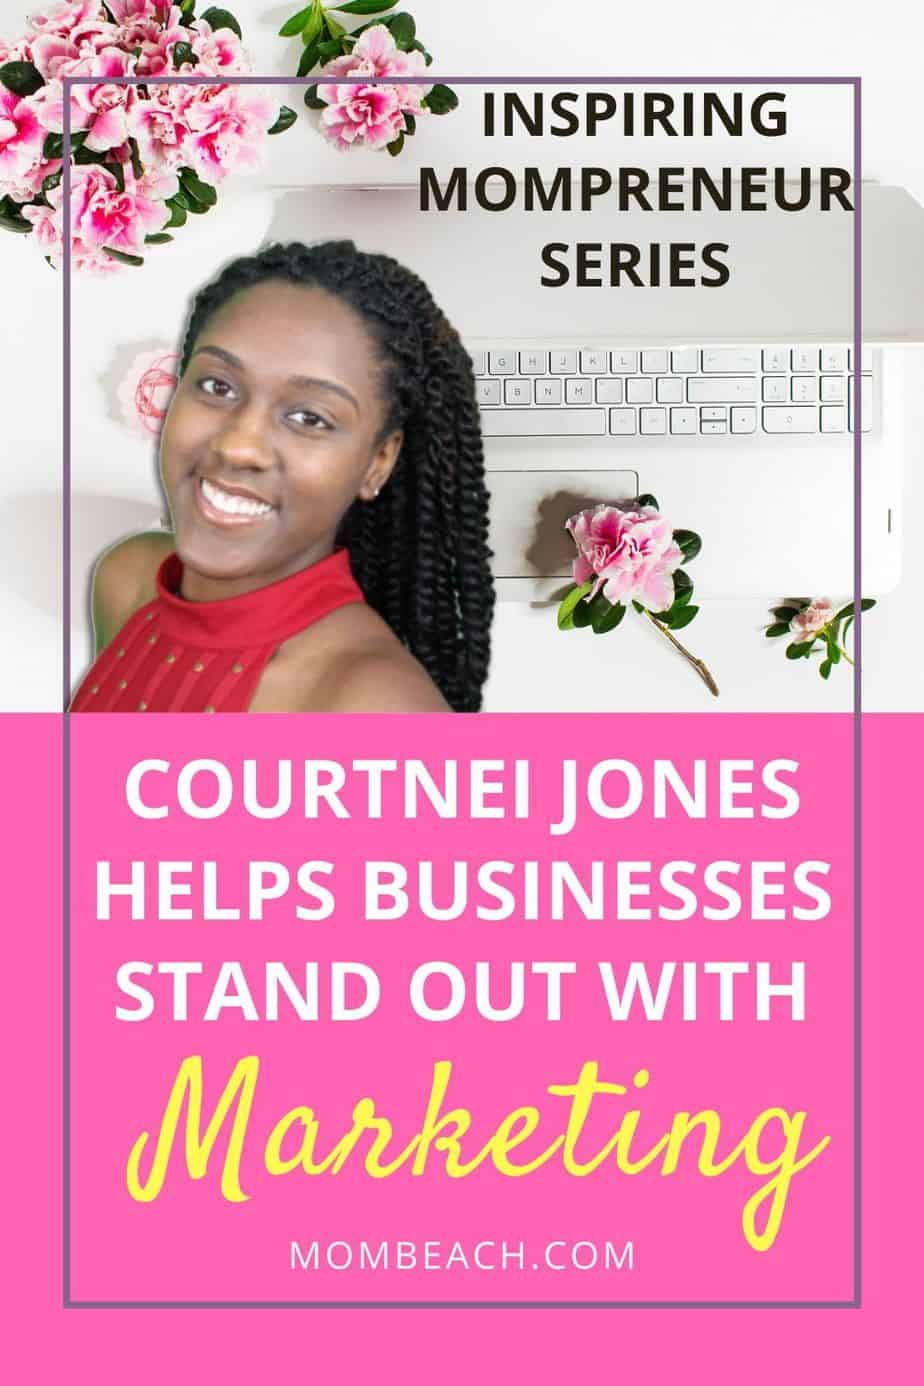 Courtnei Jones is our July Inspiring Mompreneur! Courtnei runs Conversions By Courtnei, a marketing business, and is a mom to a 2 year old boy. She is sure to inspire you! #inspiringmompreneur #conversionsbycourtnei #courtneijones #marketing #marketingbusiness